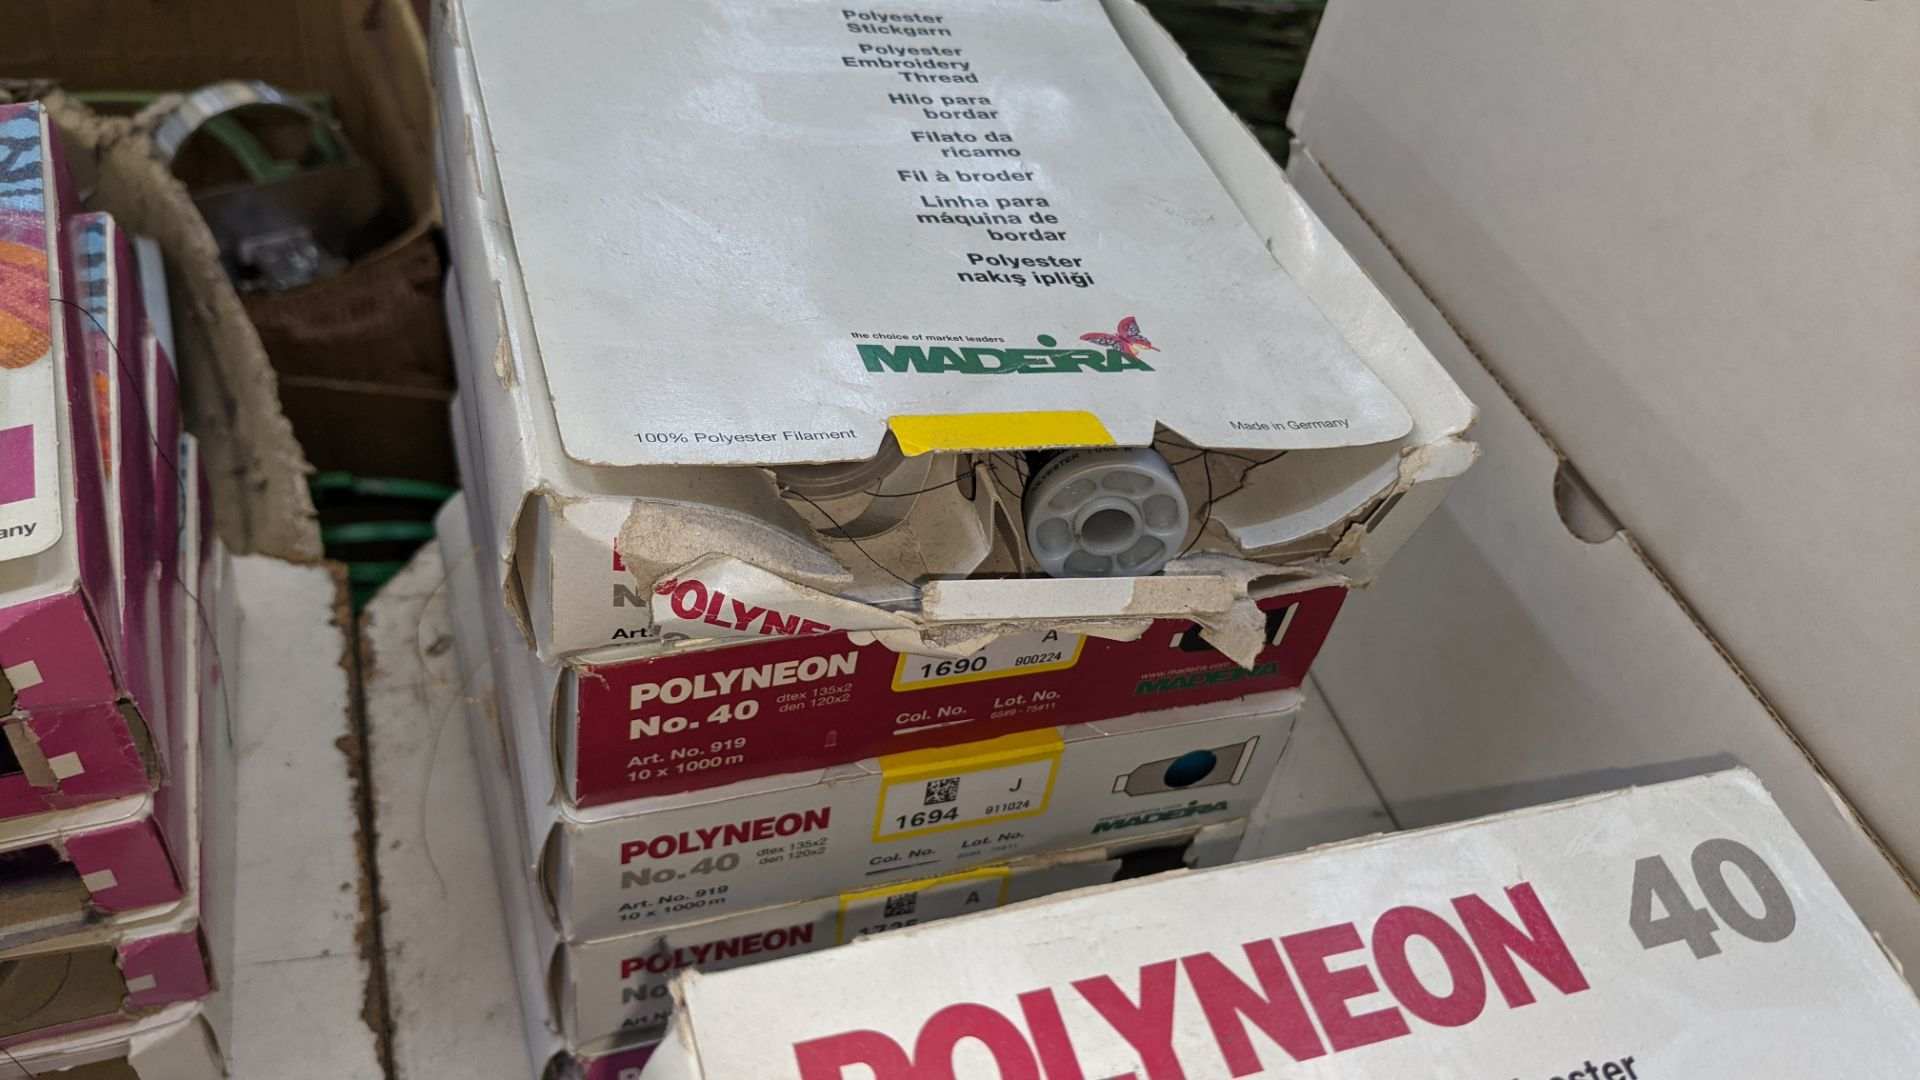 19 boxes of Madeira Polyneon machine embroidery thread - Image 6 of 10